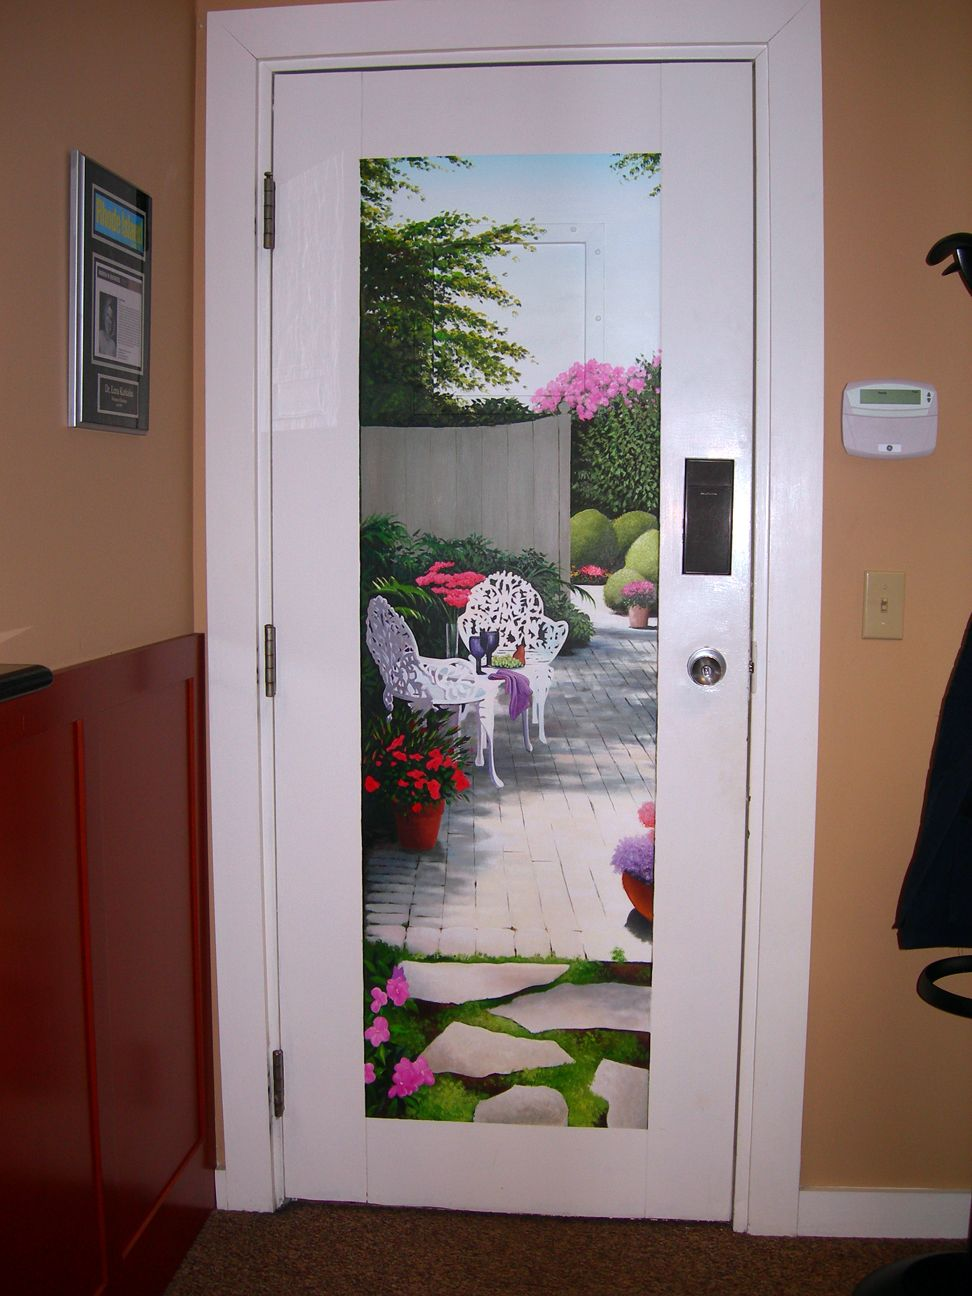 Trompe l 39 oeil door mural wall door murals pinterest for Door wall mural